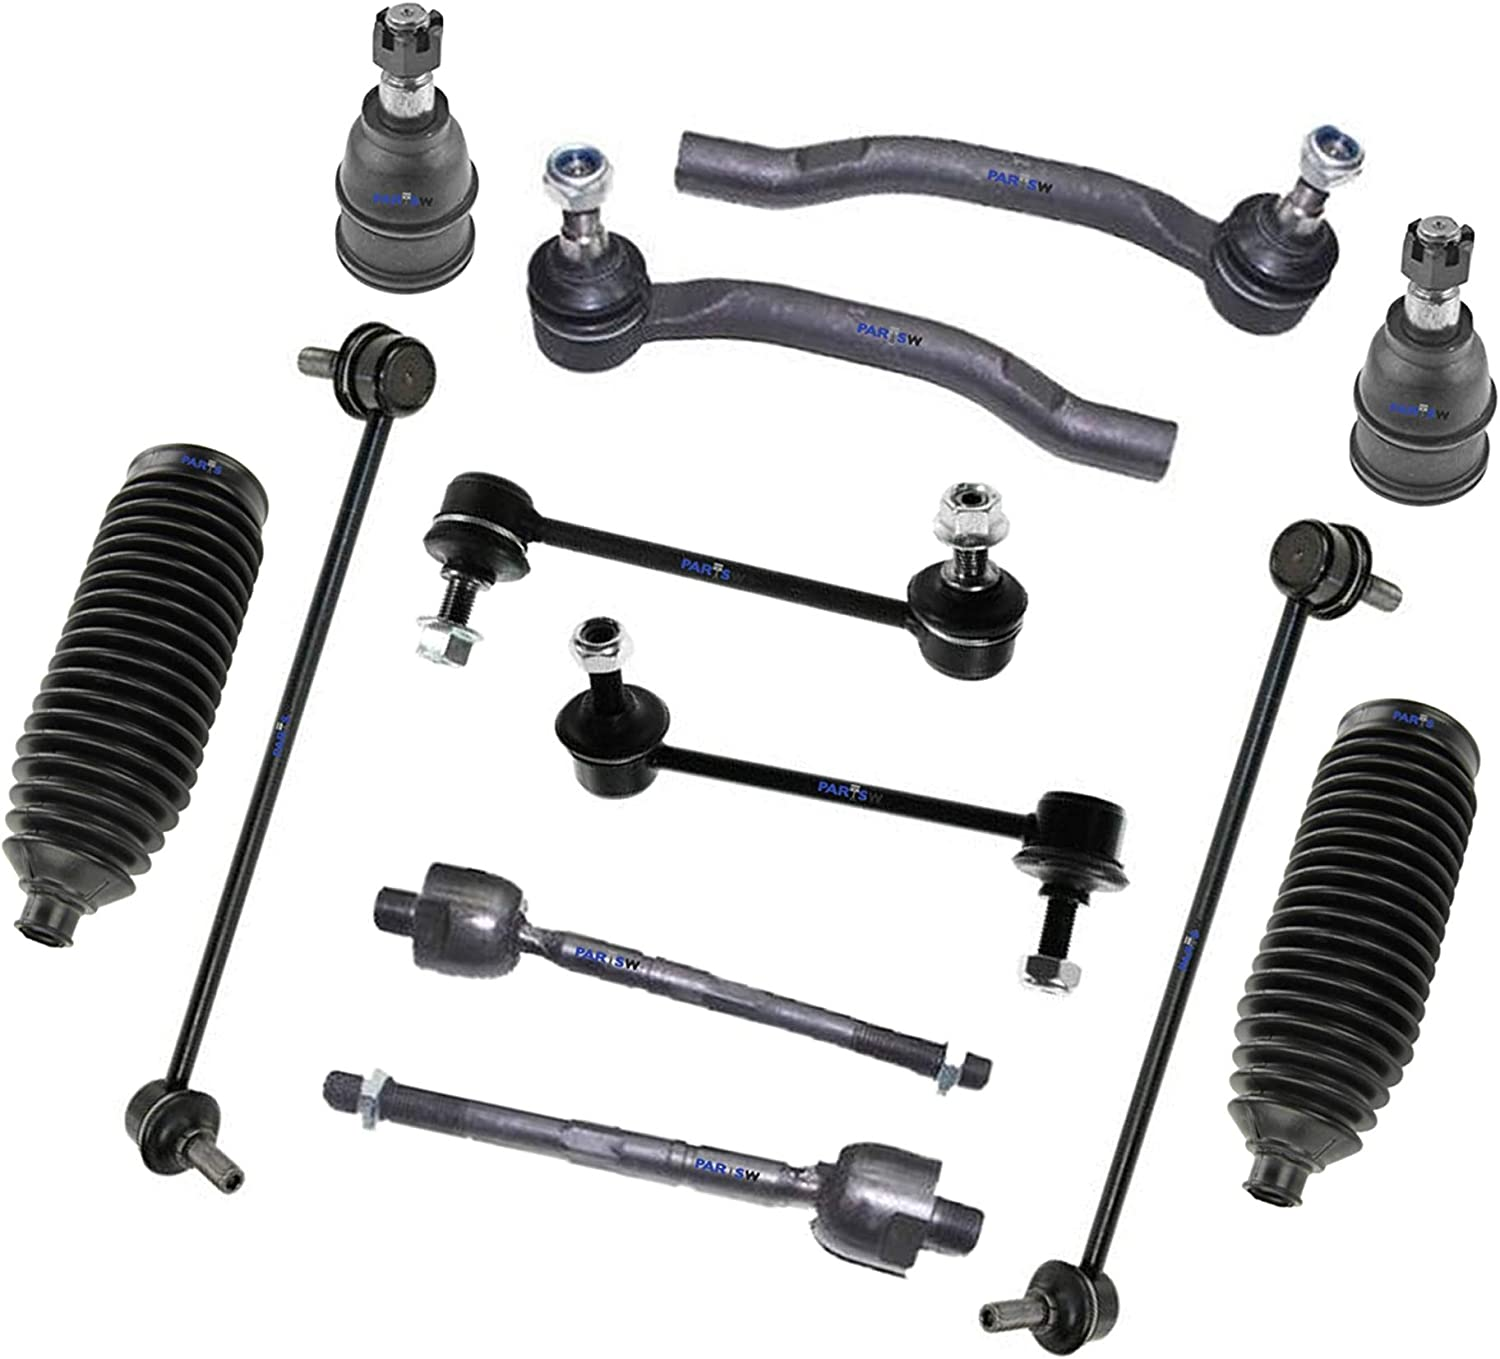 Rack and Pinion Bellow Boots Lower Ball Joints PartsW 12 Pc Front /& Rear Suspension Kit for Acura Sway Bar End Link Honda//MDX Pilot//Inner /& Outer Tie Rod End